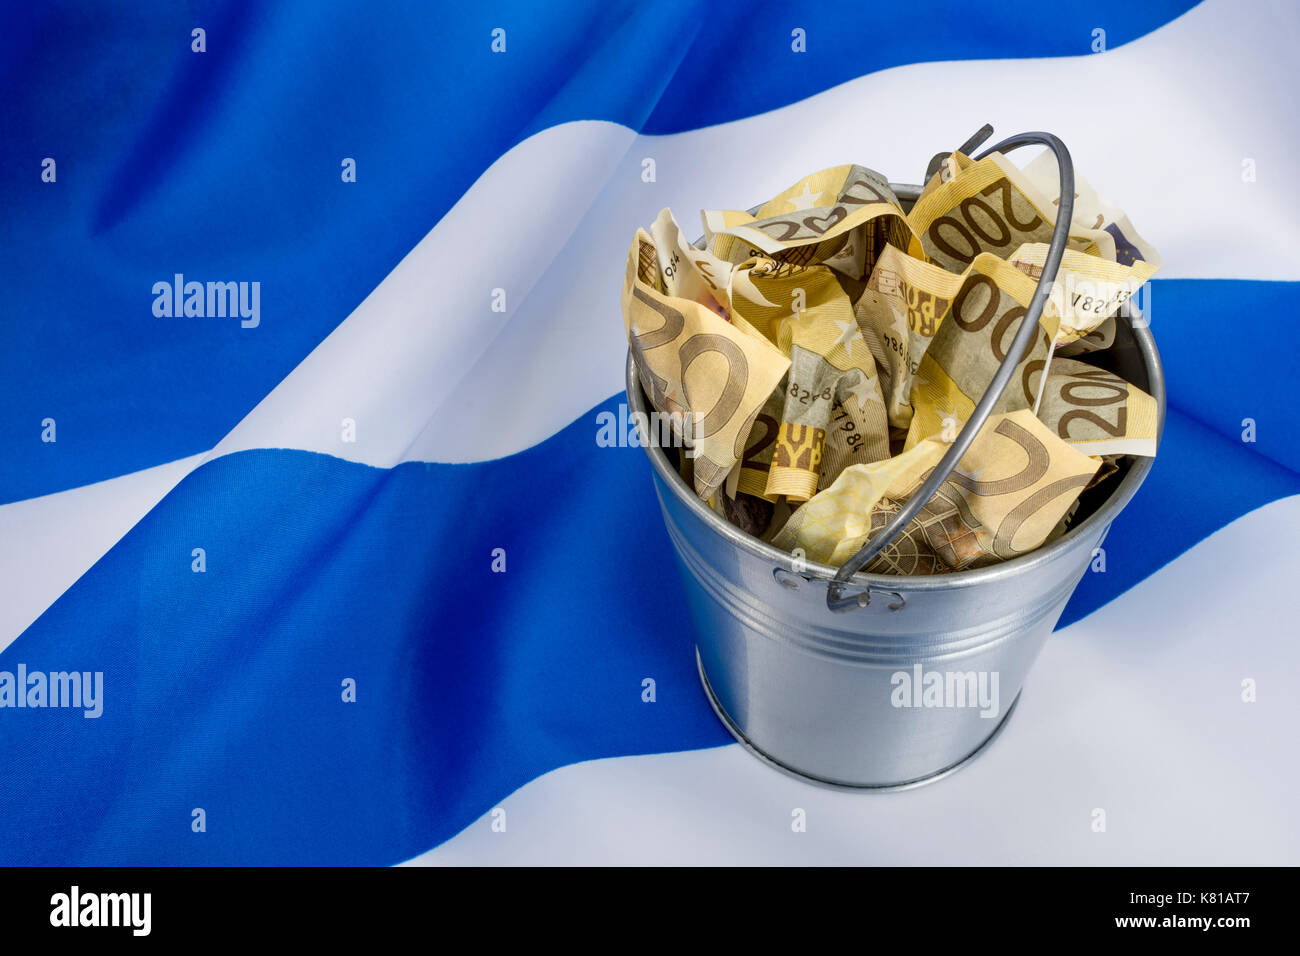 Greek flag with a bucket of Euros - as metaphor for the Greek financial crisis and bailout, Greek debt relief. - Stock Image